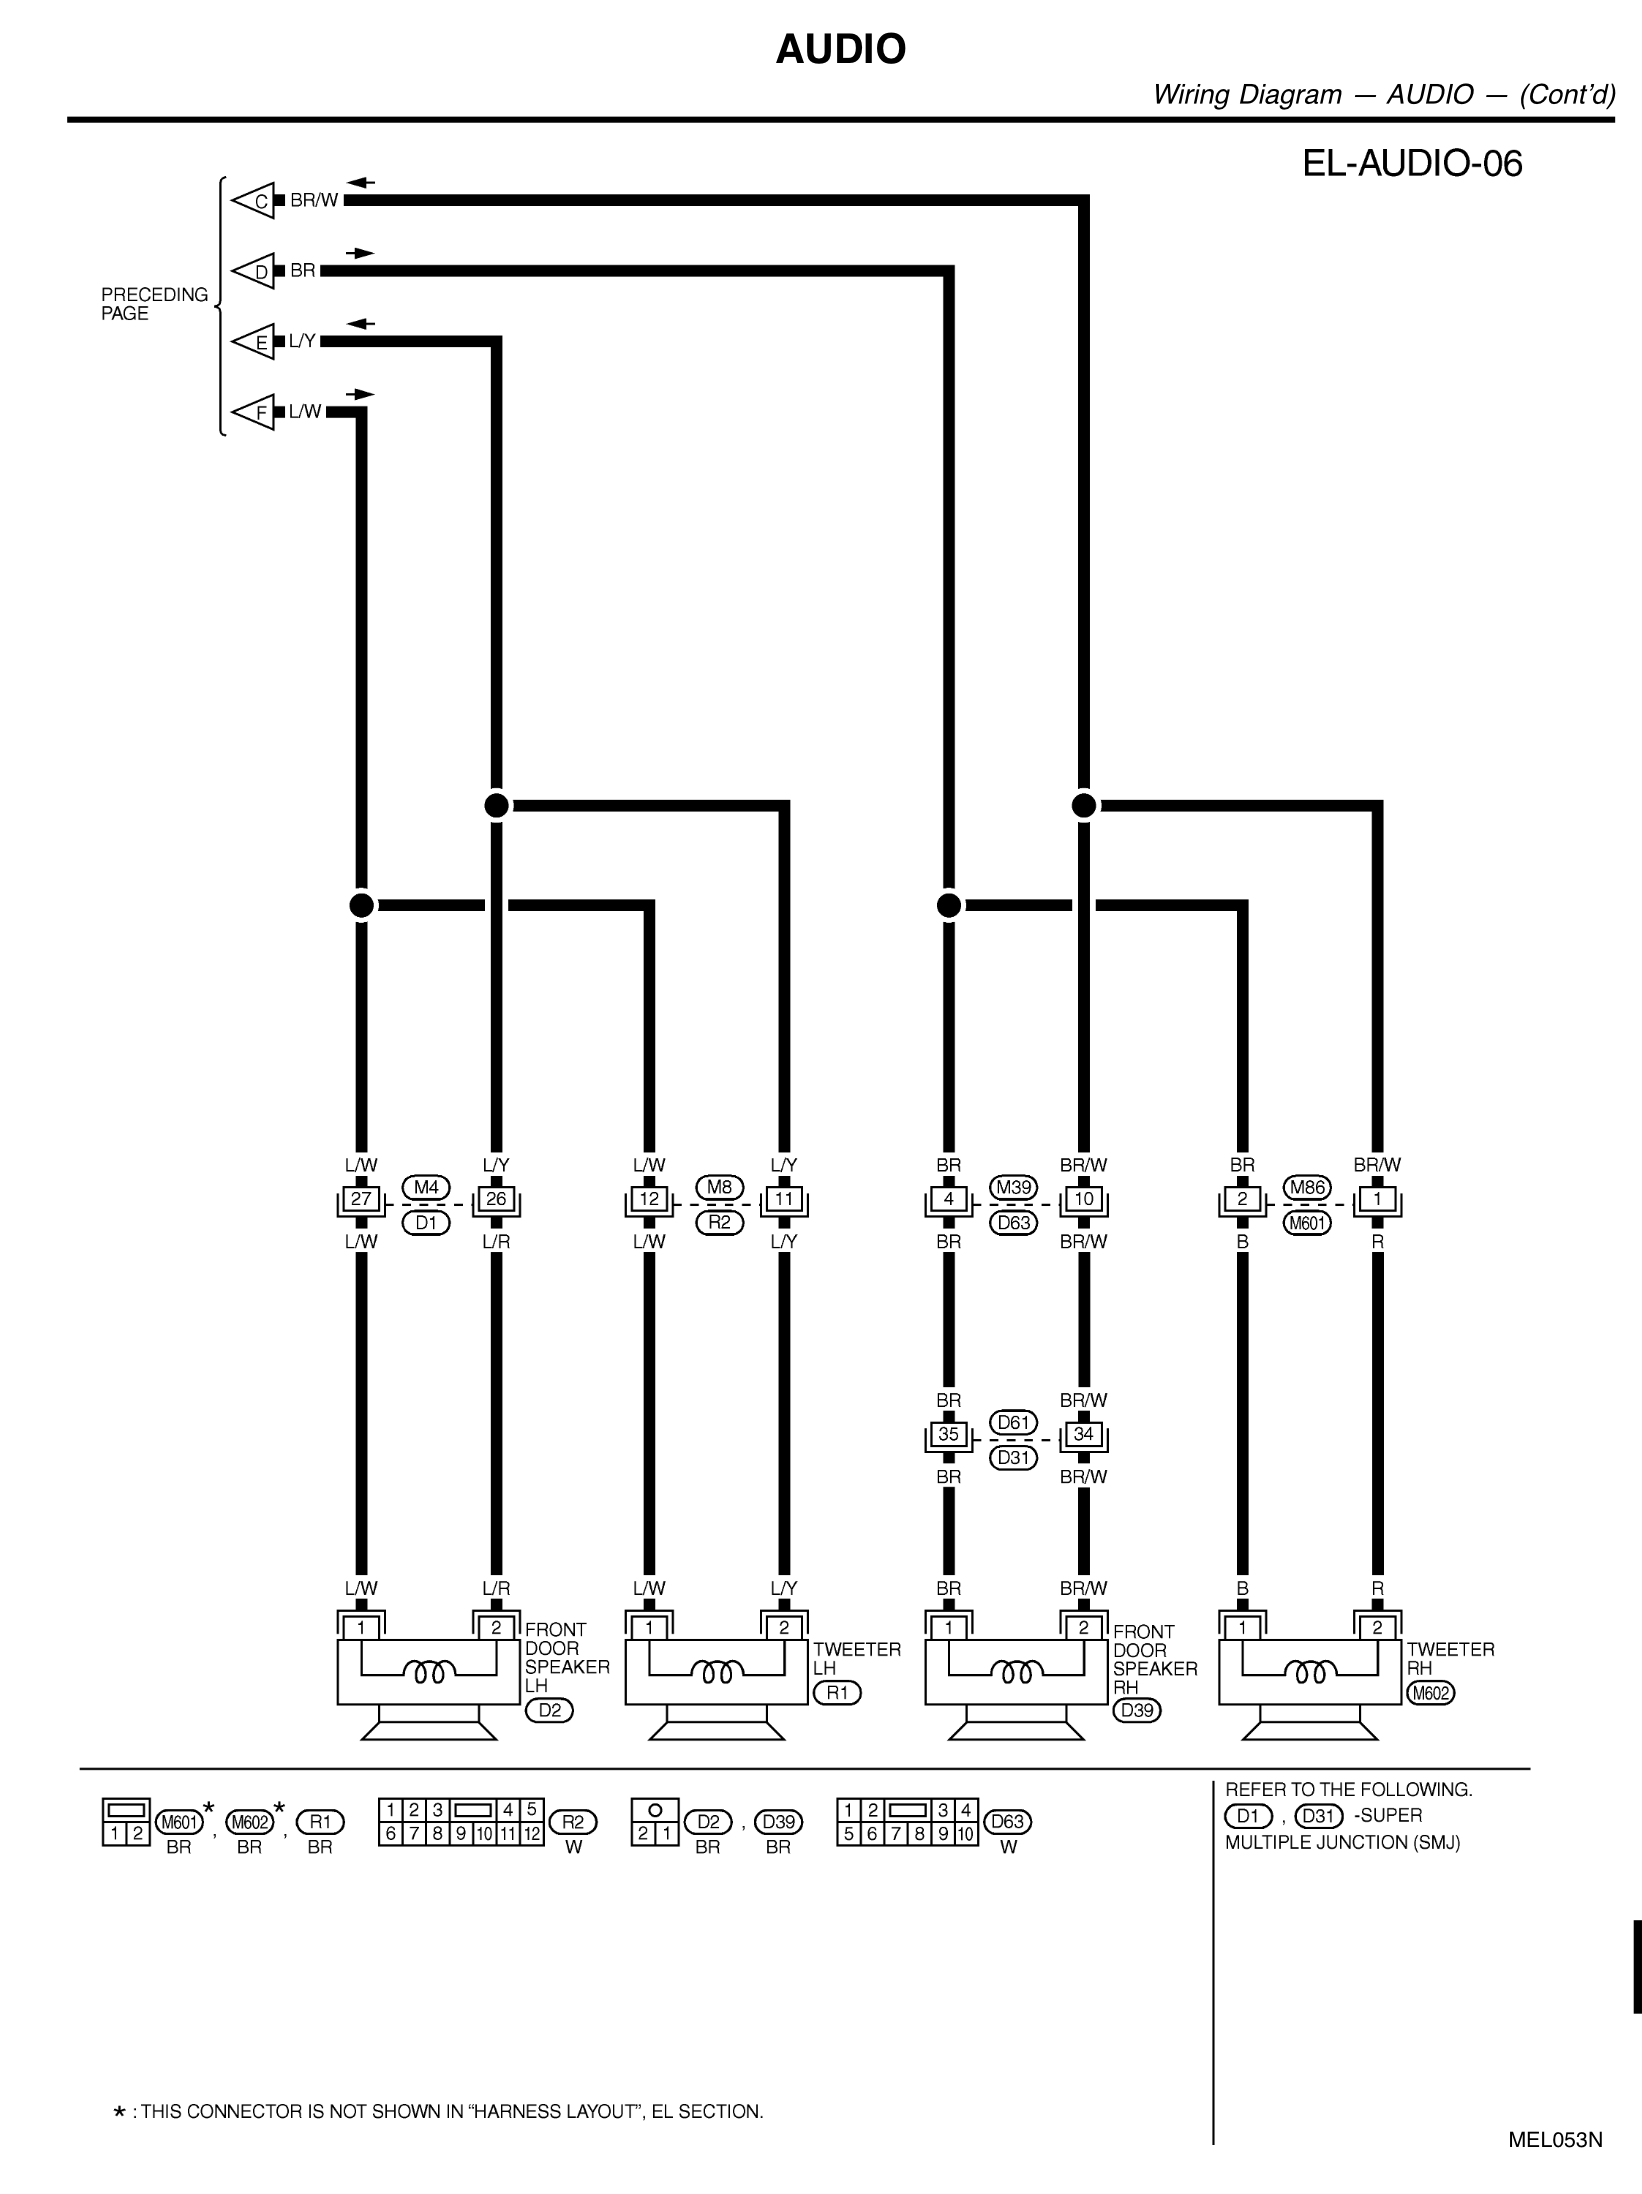 Need Wire Diagram For 20th Anniversary Edition Stereo And